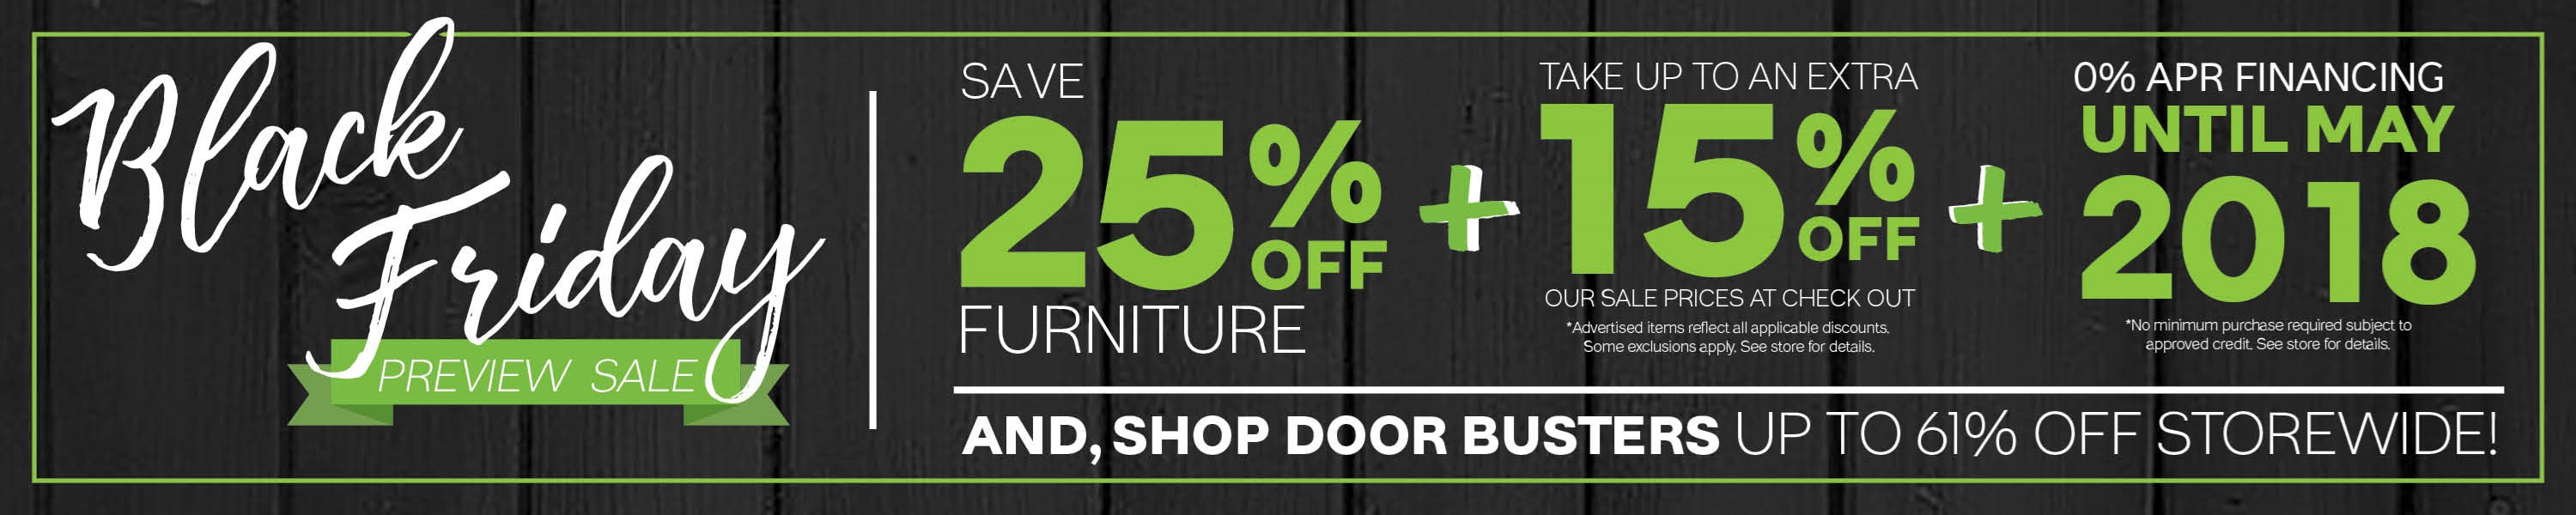 Furniture & ApplianceMart Black Friday Preview Sale